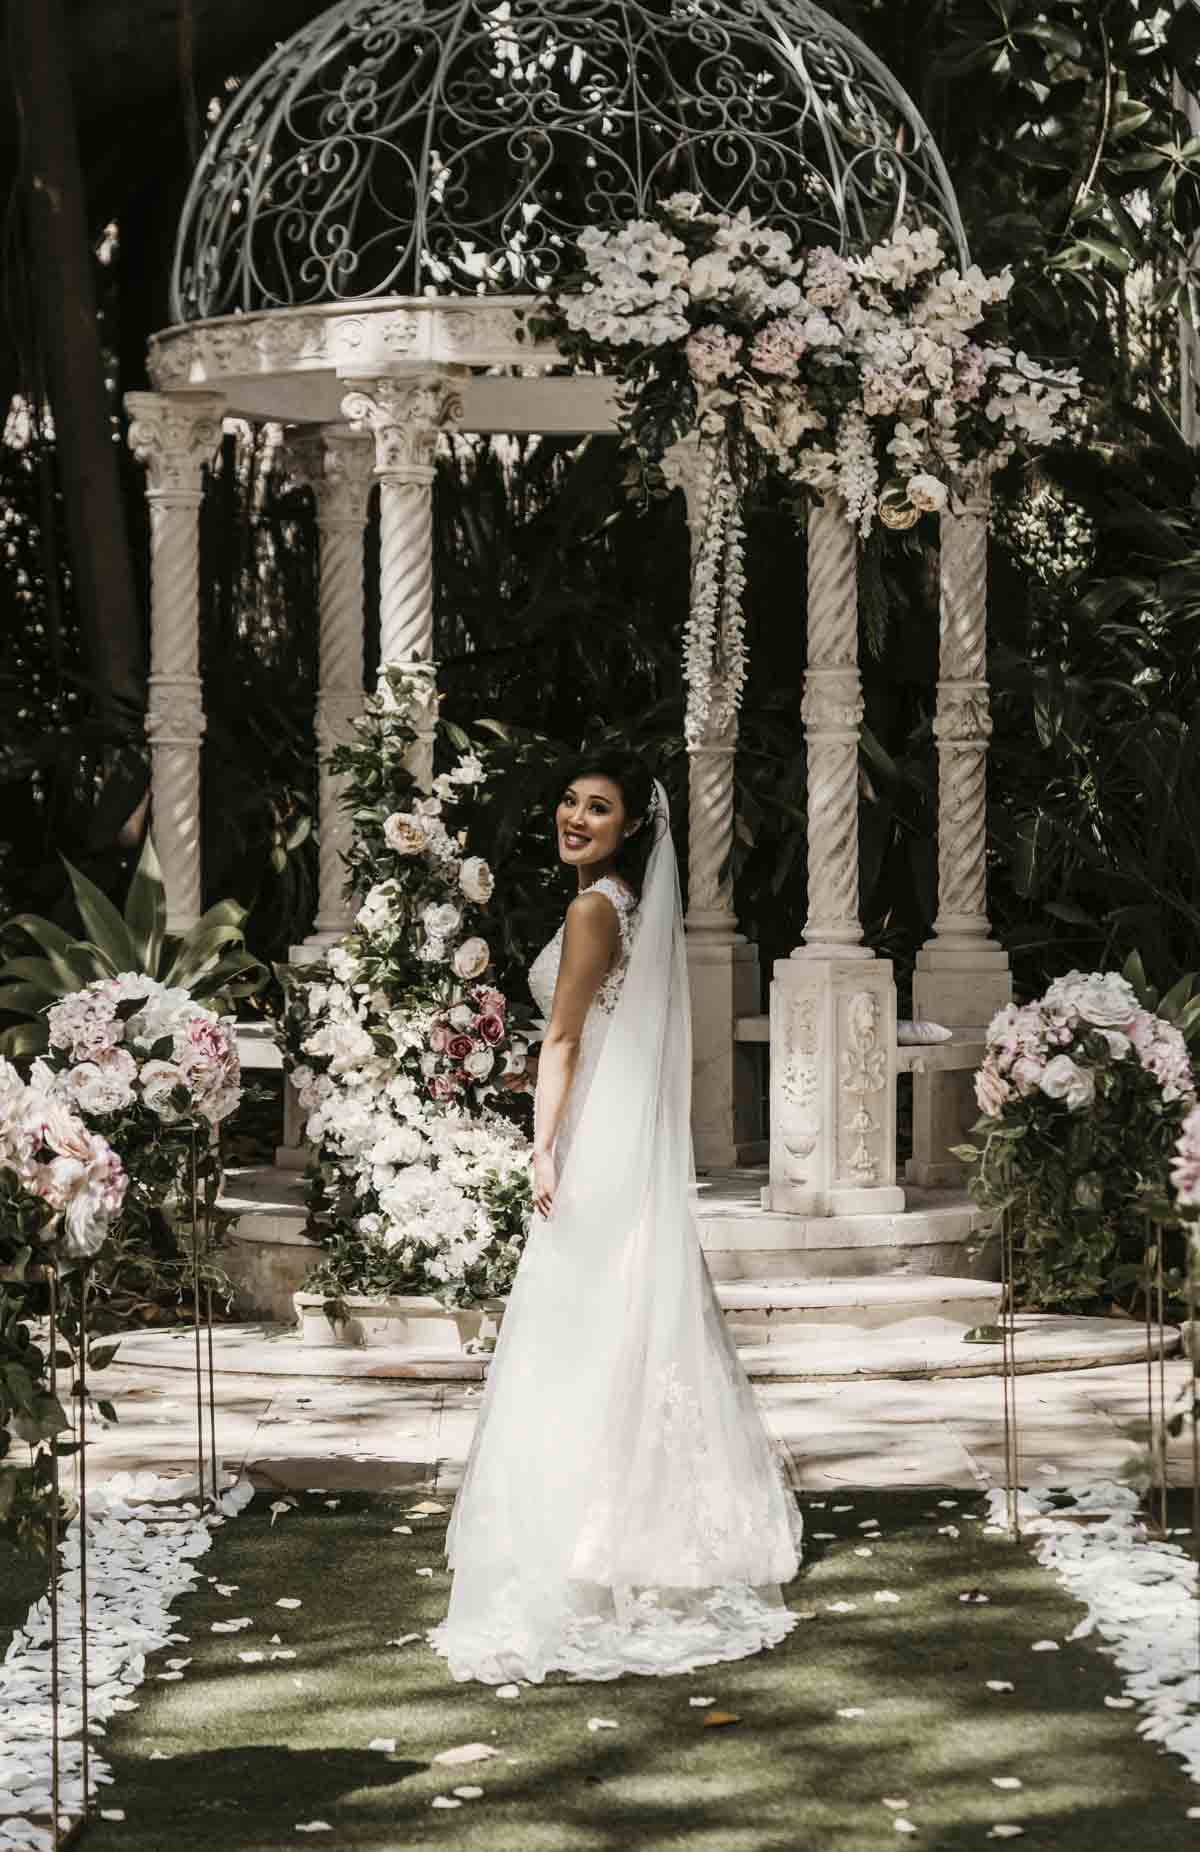 Brisbane bride, Shay looked ethereal in her white wedding gown. The outdoor garden wedding ceremony took place at Boulevard Gardens in Indooroopilly, Queensland.